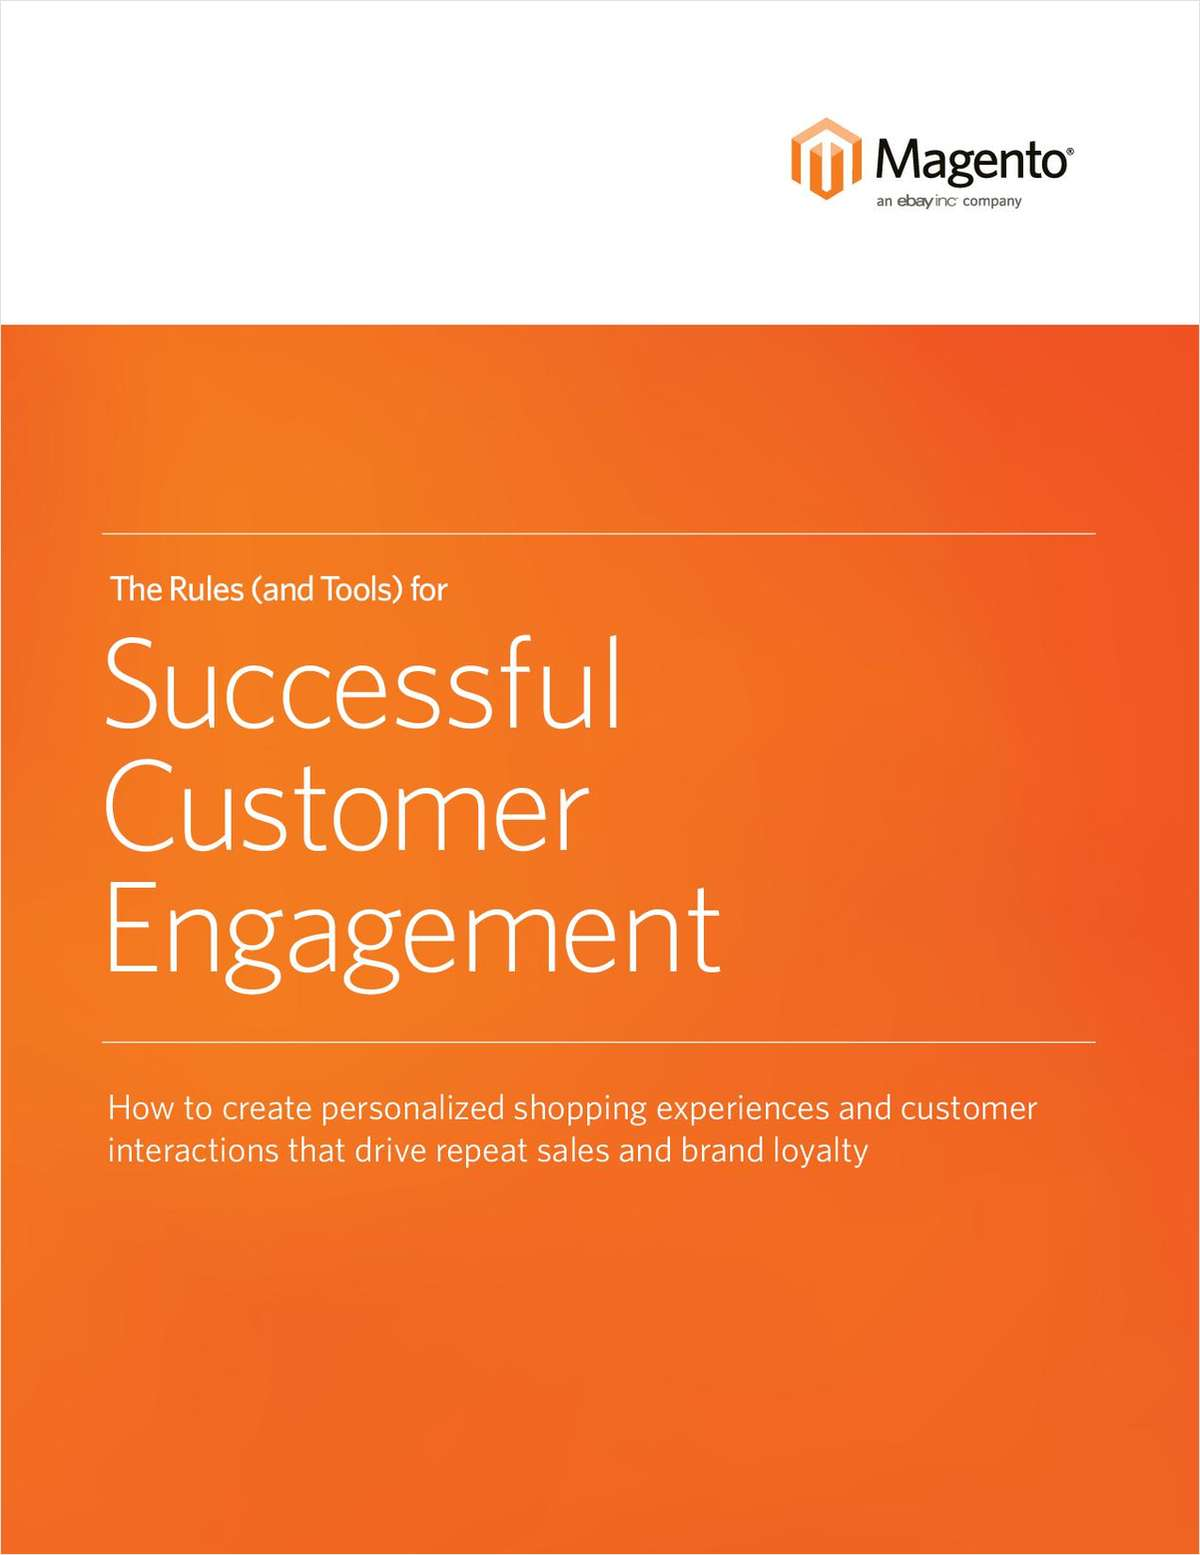 The Rules (and Tools) for Successful Customer Engagement